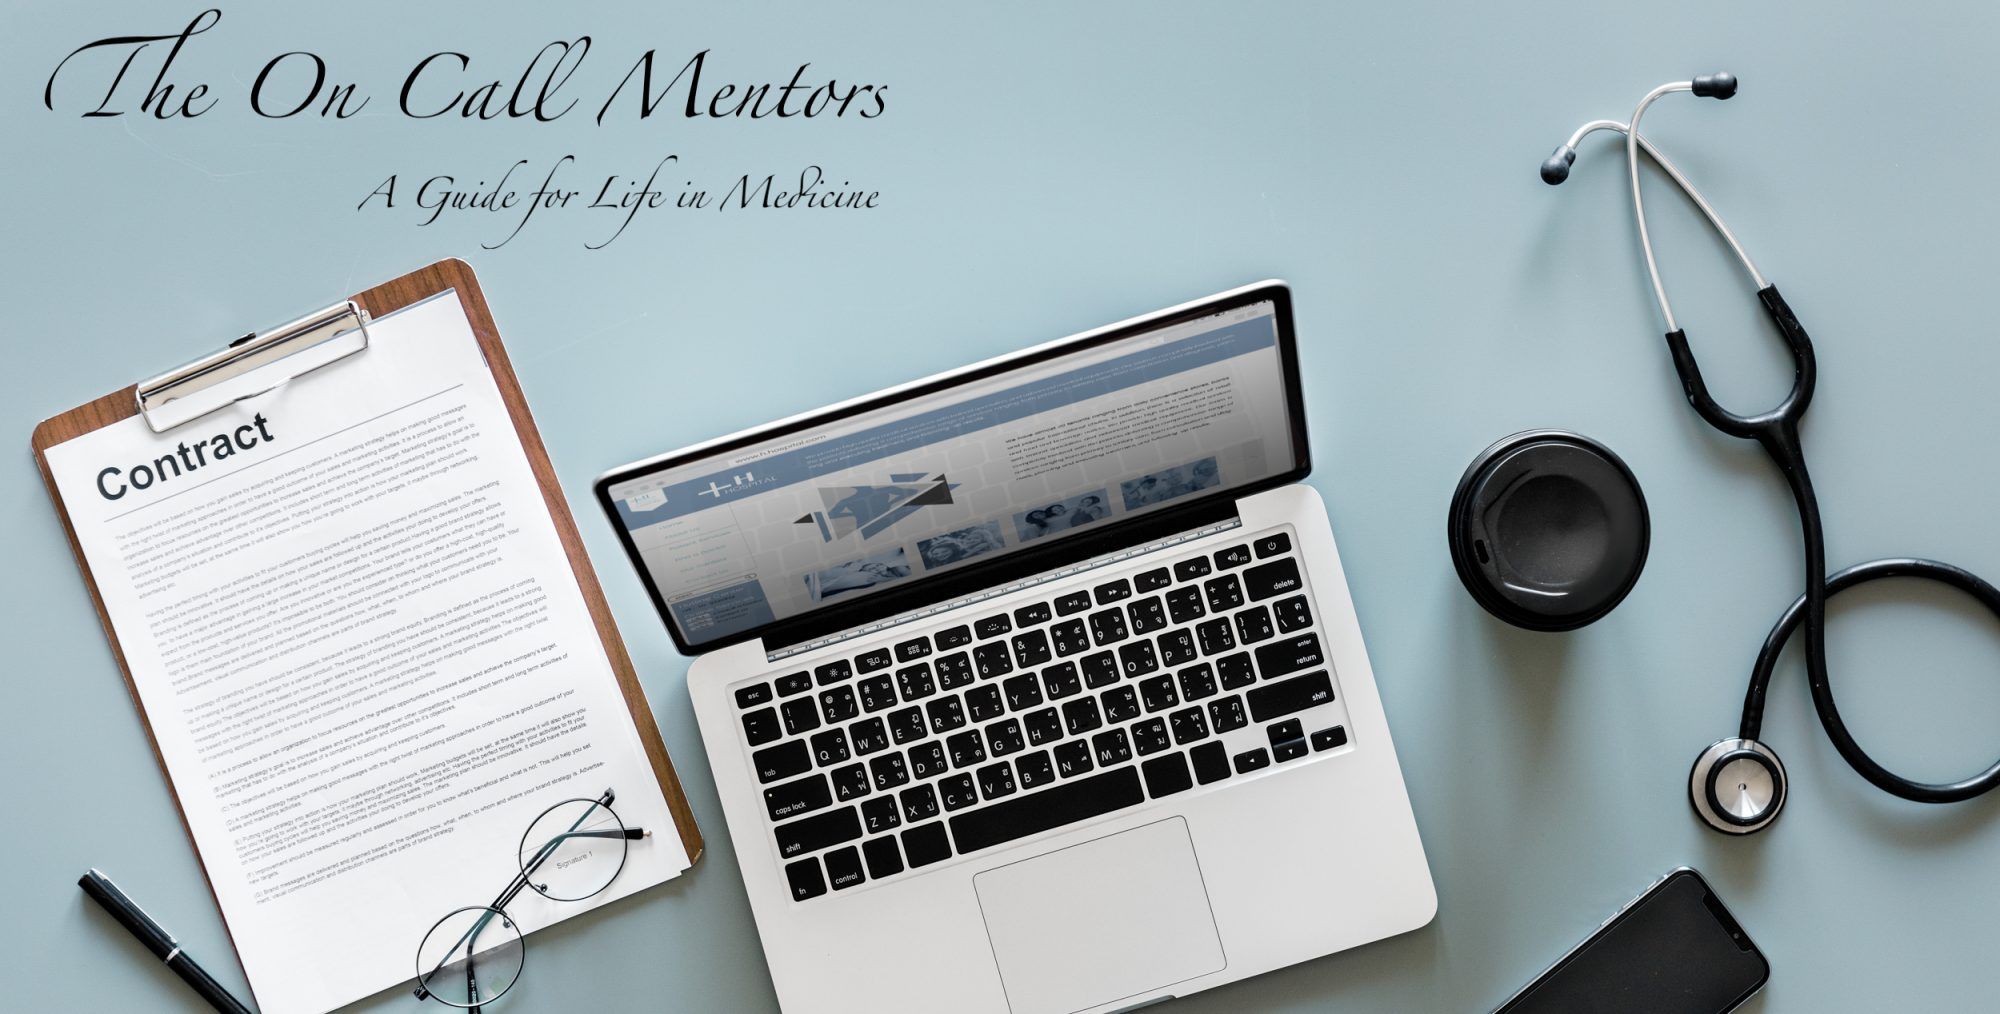 The On Call Mentors